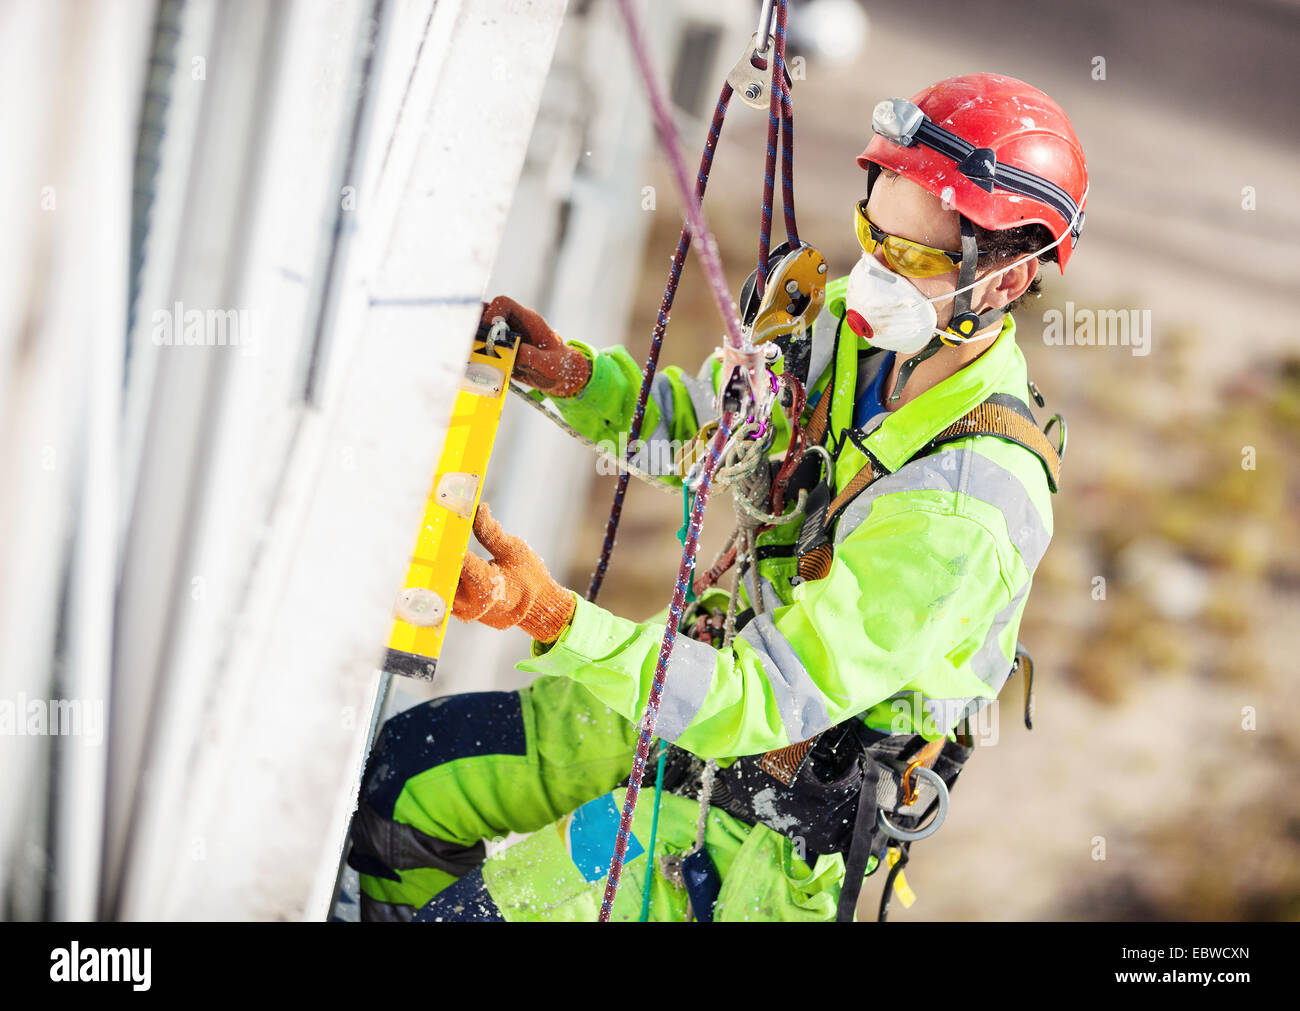 Klettergurt Taille Messen : Safety harness and work stockfotos & bilder